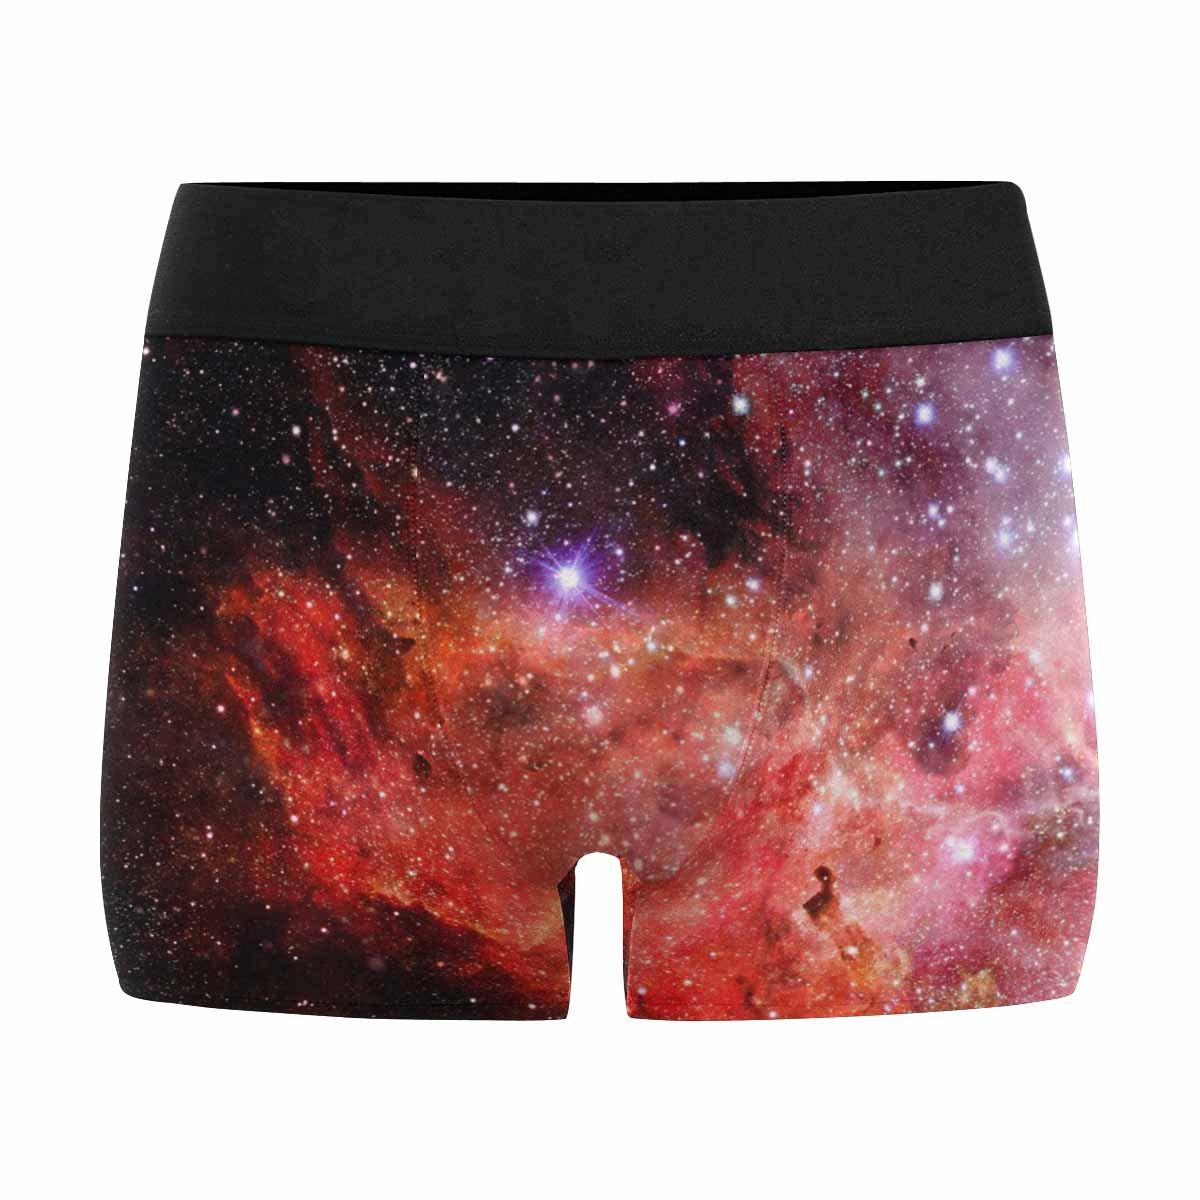 INTERESTPRINT Mens All-Over Print Boxer Briefs Abstract Scientific Background Galaxy and Nebula in Space XS-3XL